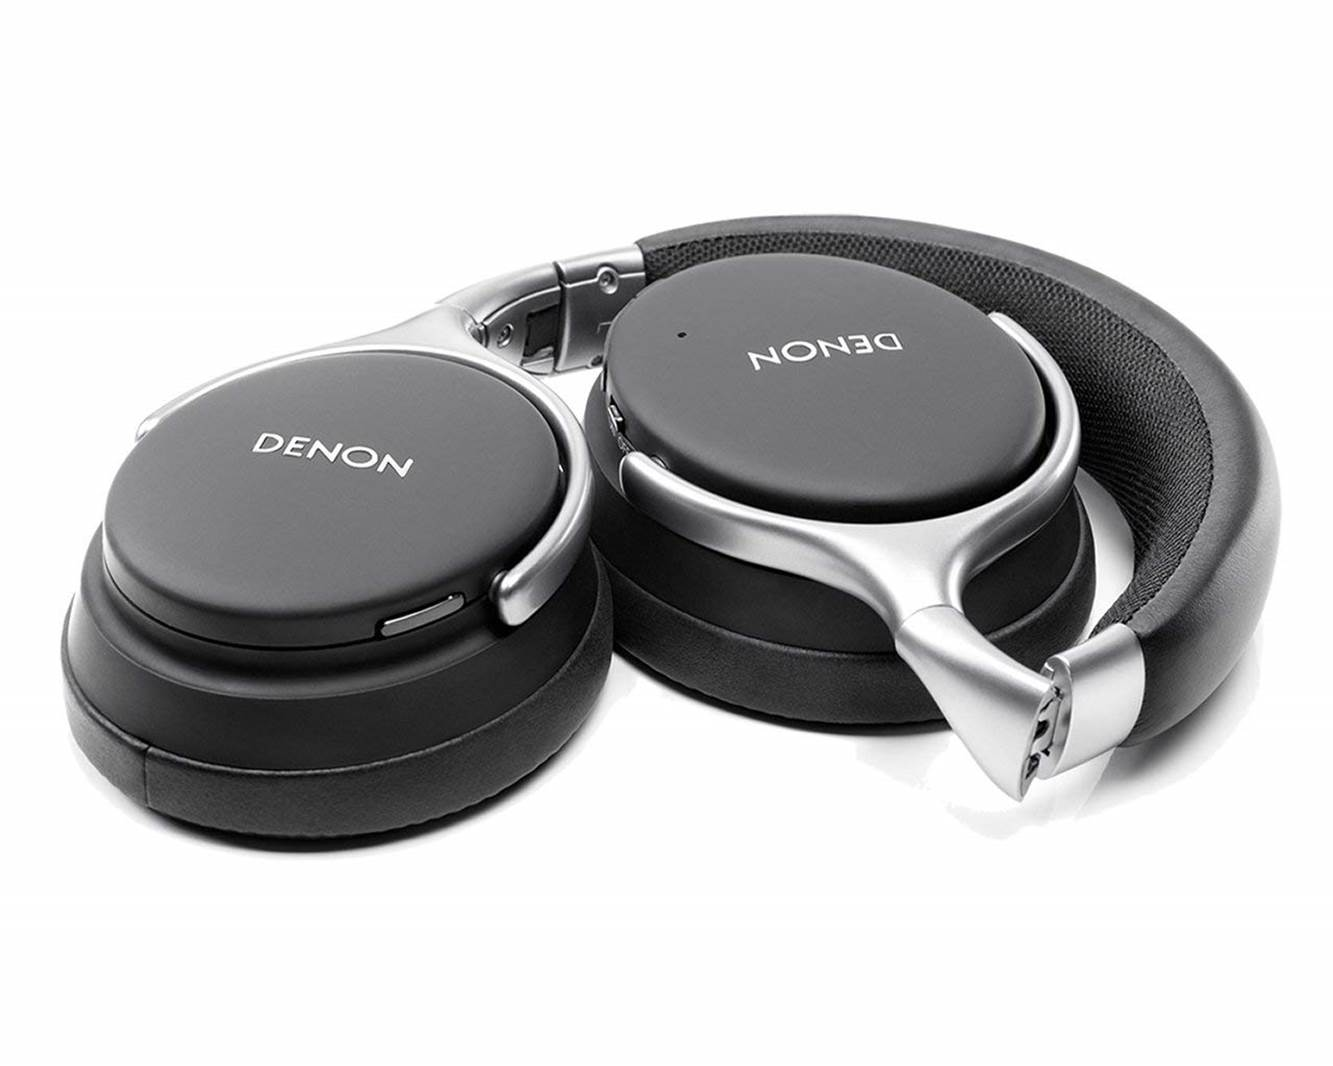 Denon AHGC20 Wireless Noise Cancelling Headphones